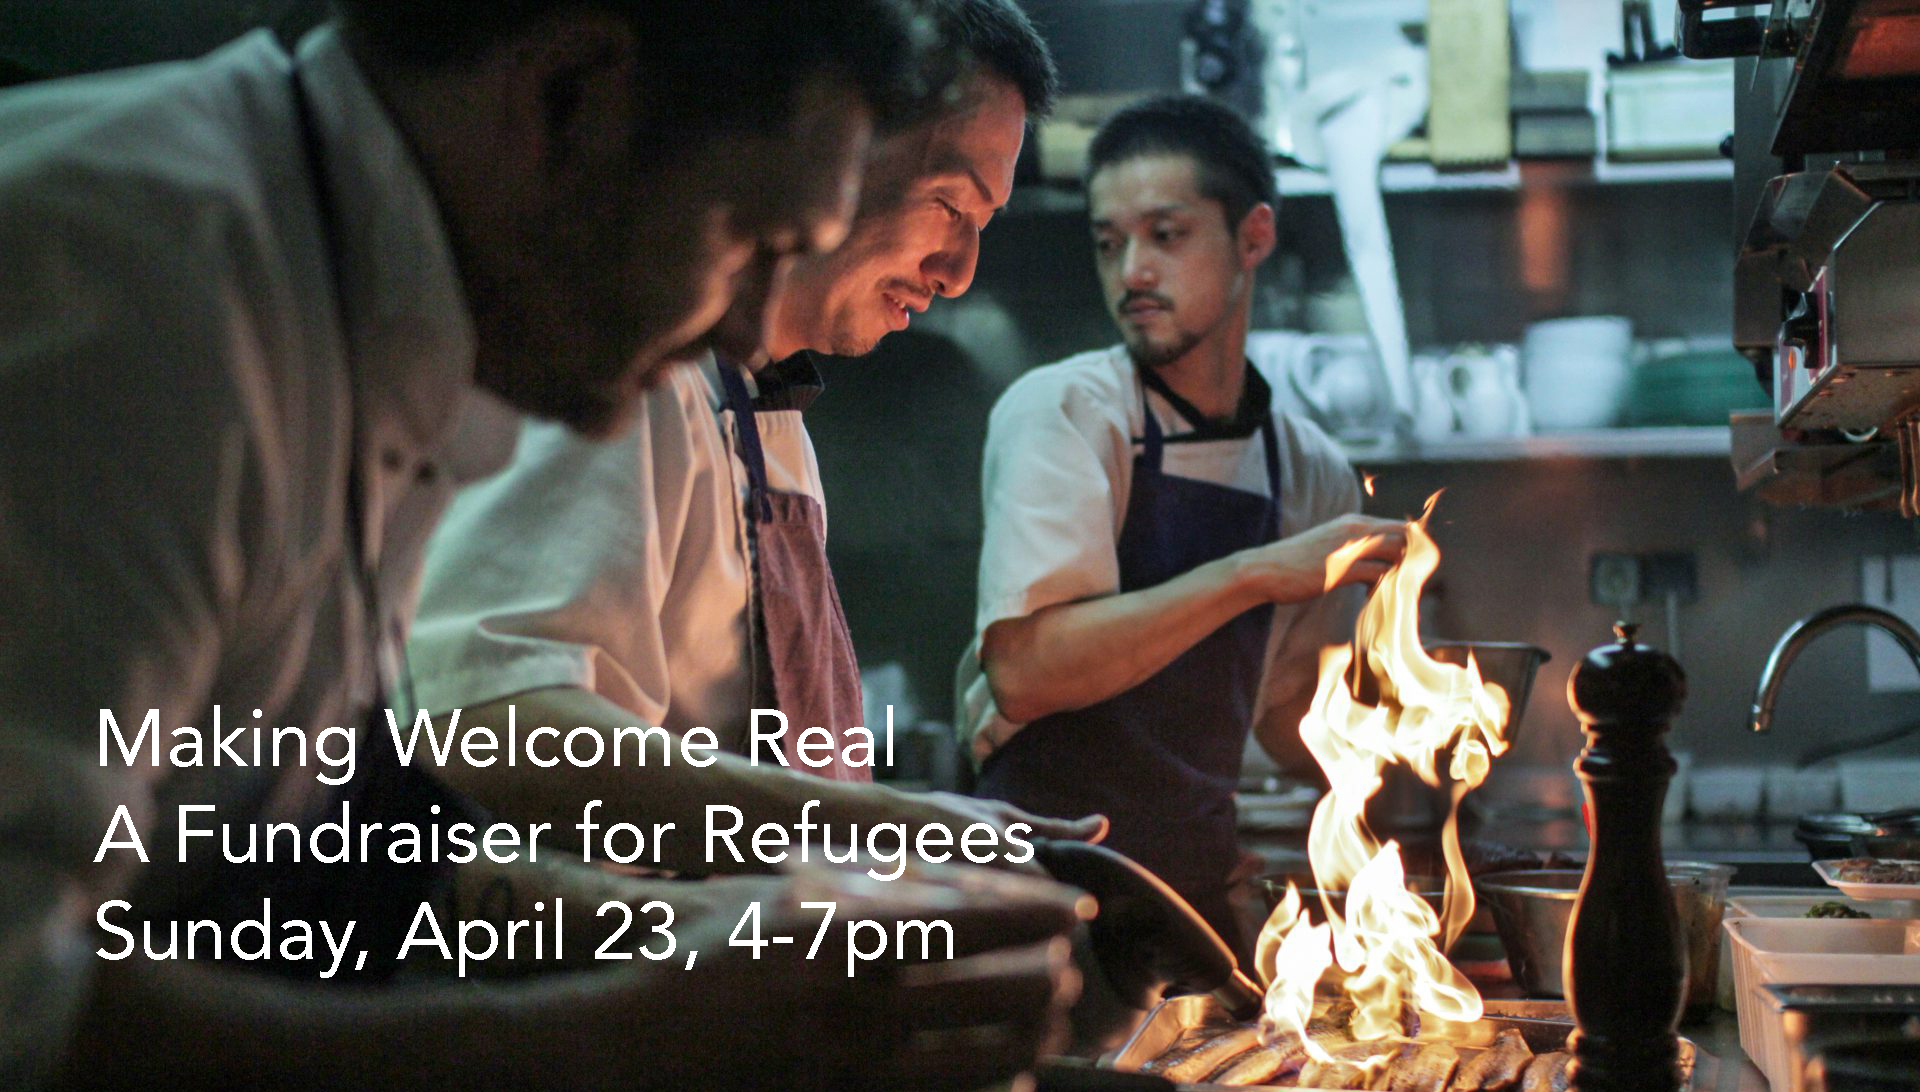 Making Welcome Real – A Fundraiser for Refugees